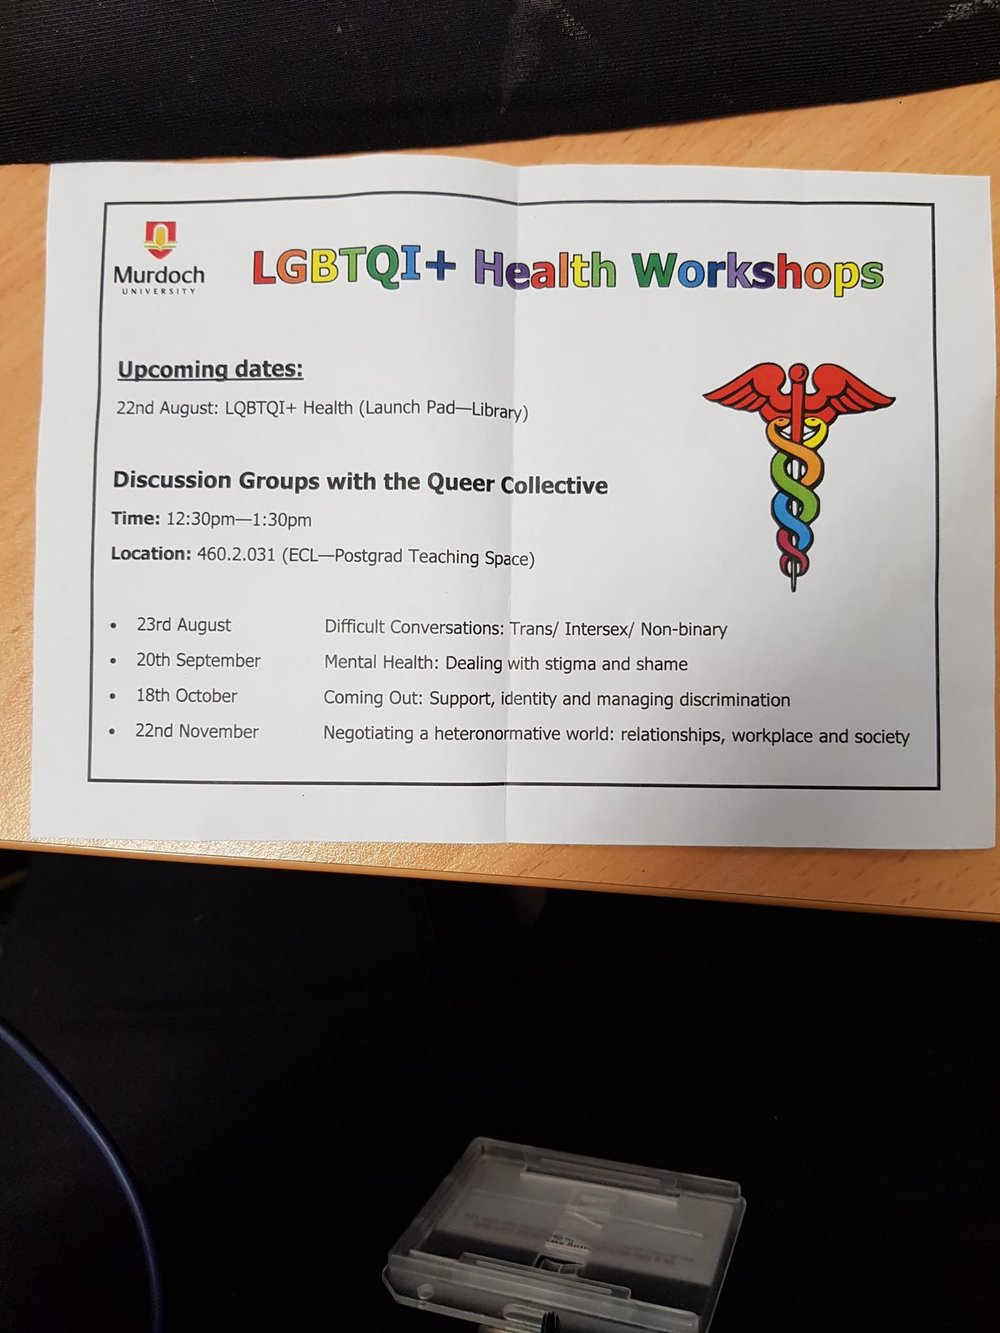 lgbtqi workshops.jpg